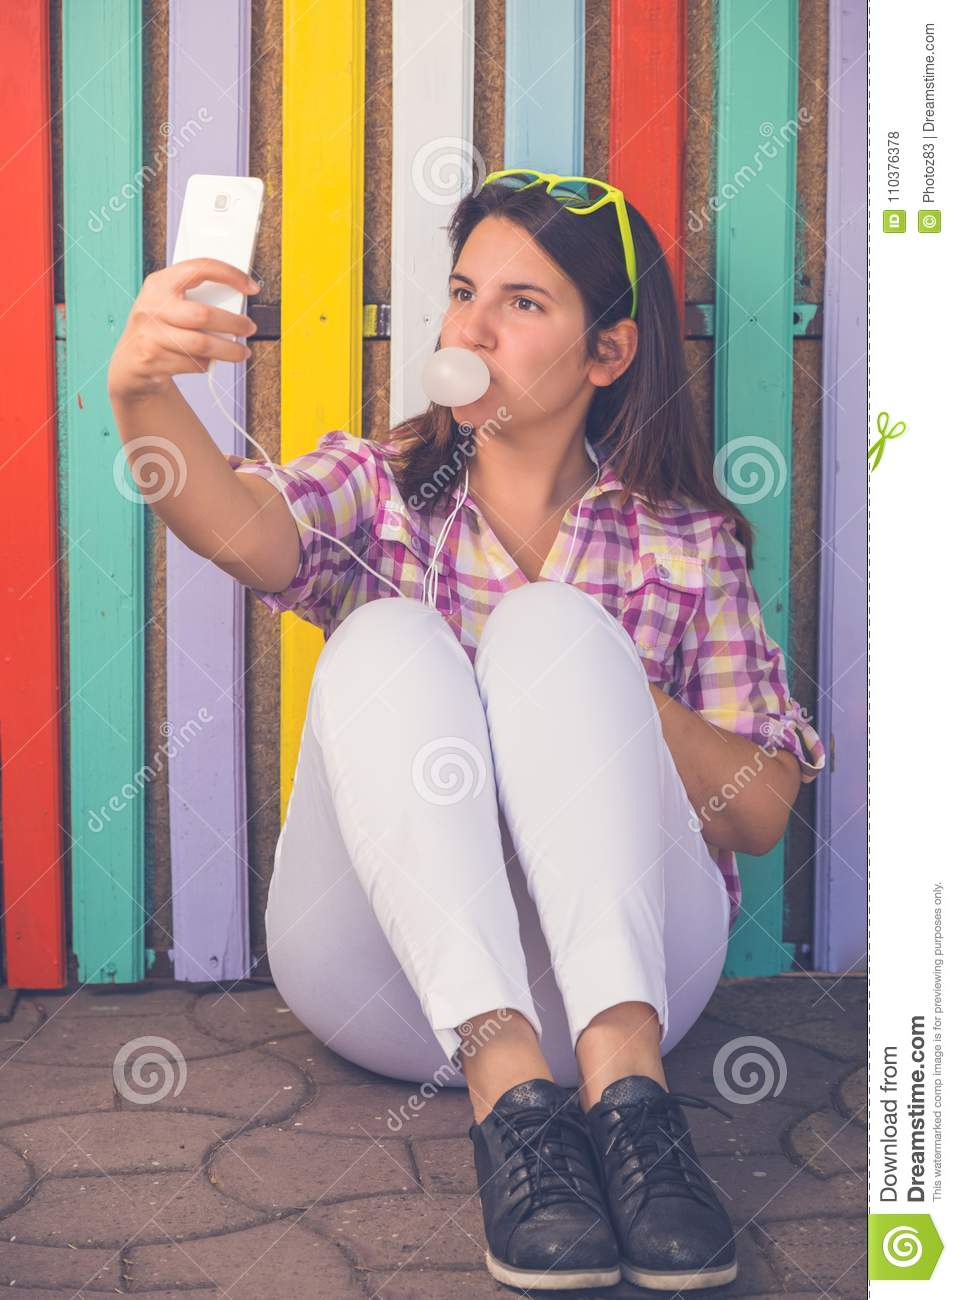 Young female taking selfie in front of colorful wooden wall